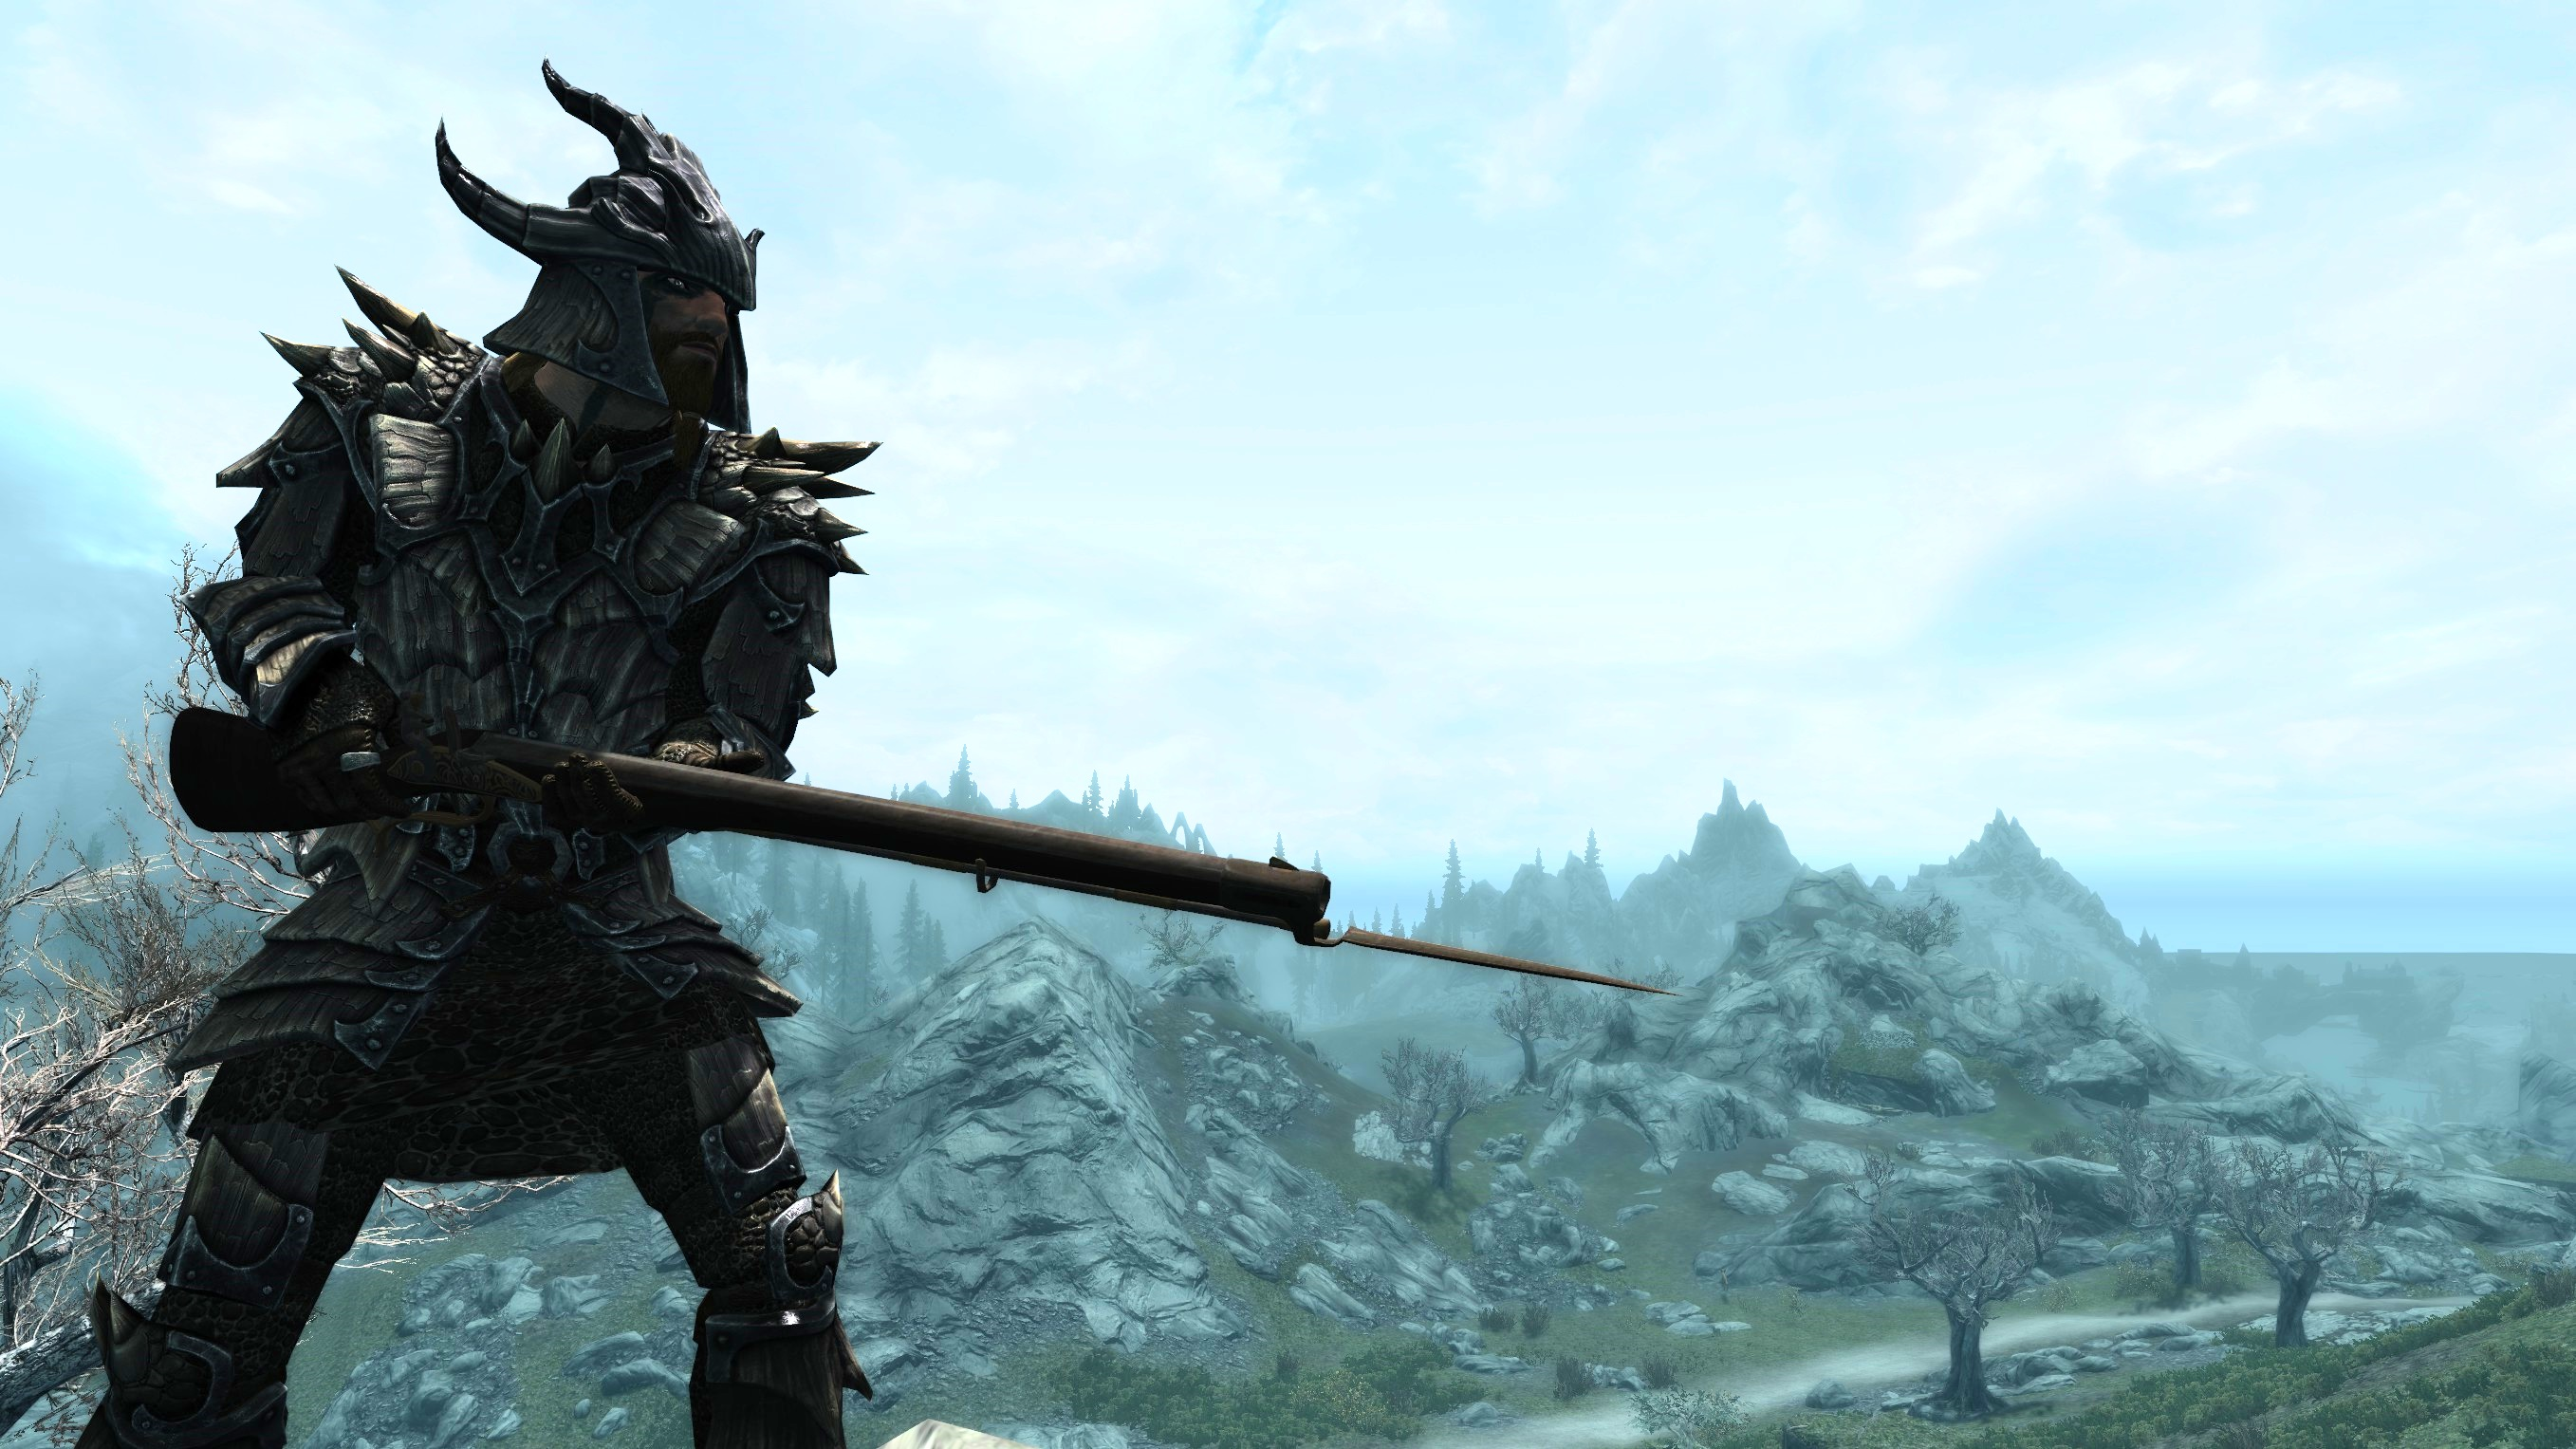 Skyrim Mod Gives You Guns Makes You Feel Bad Pc Gamer